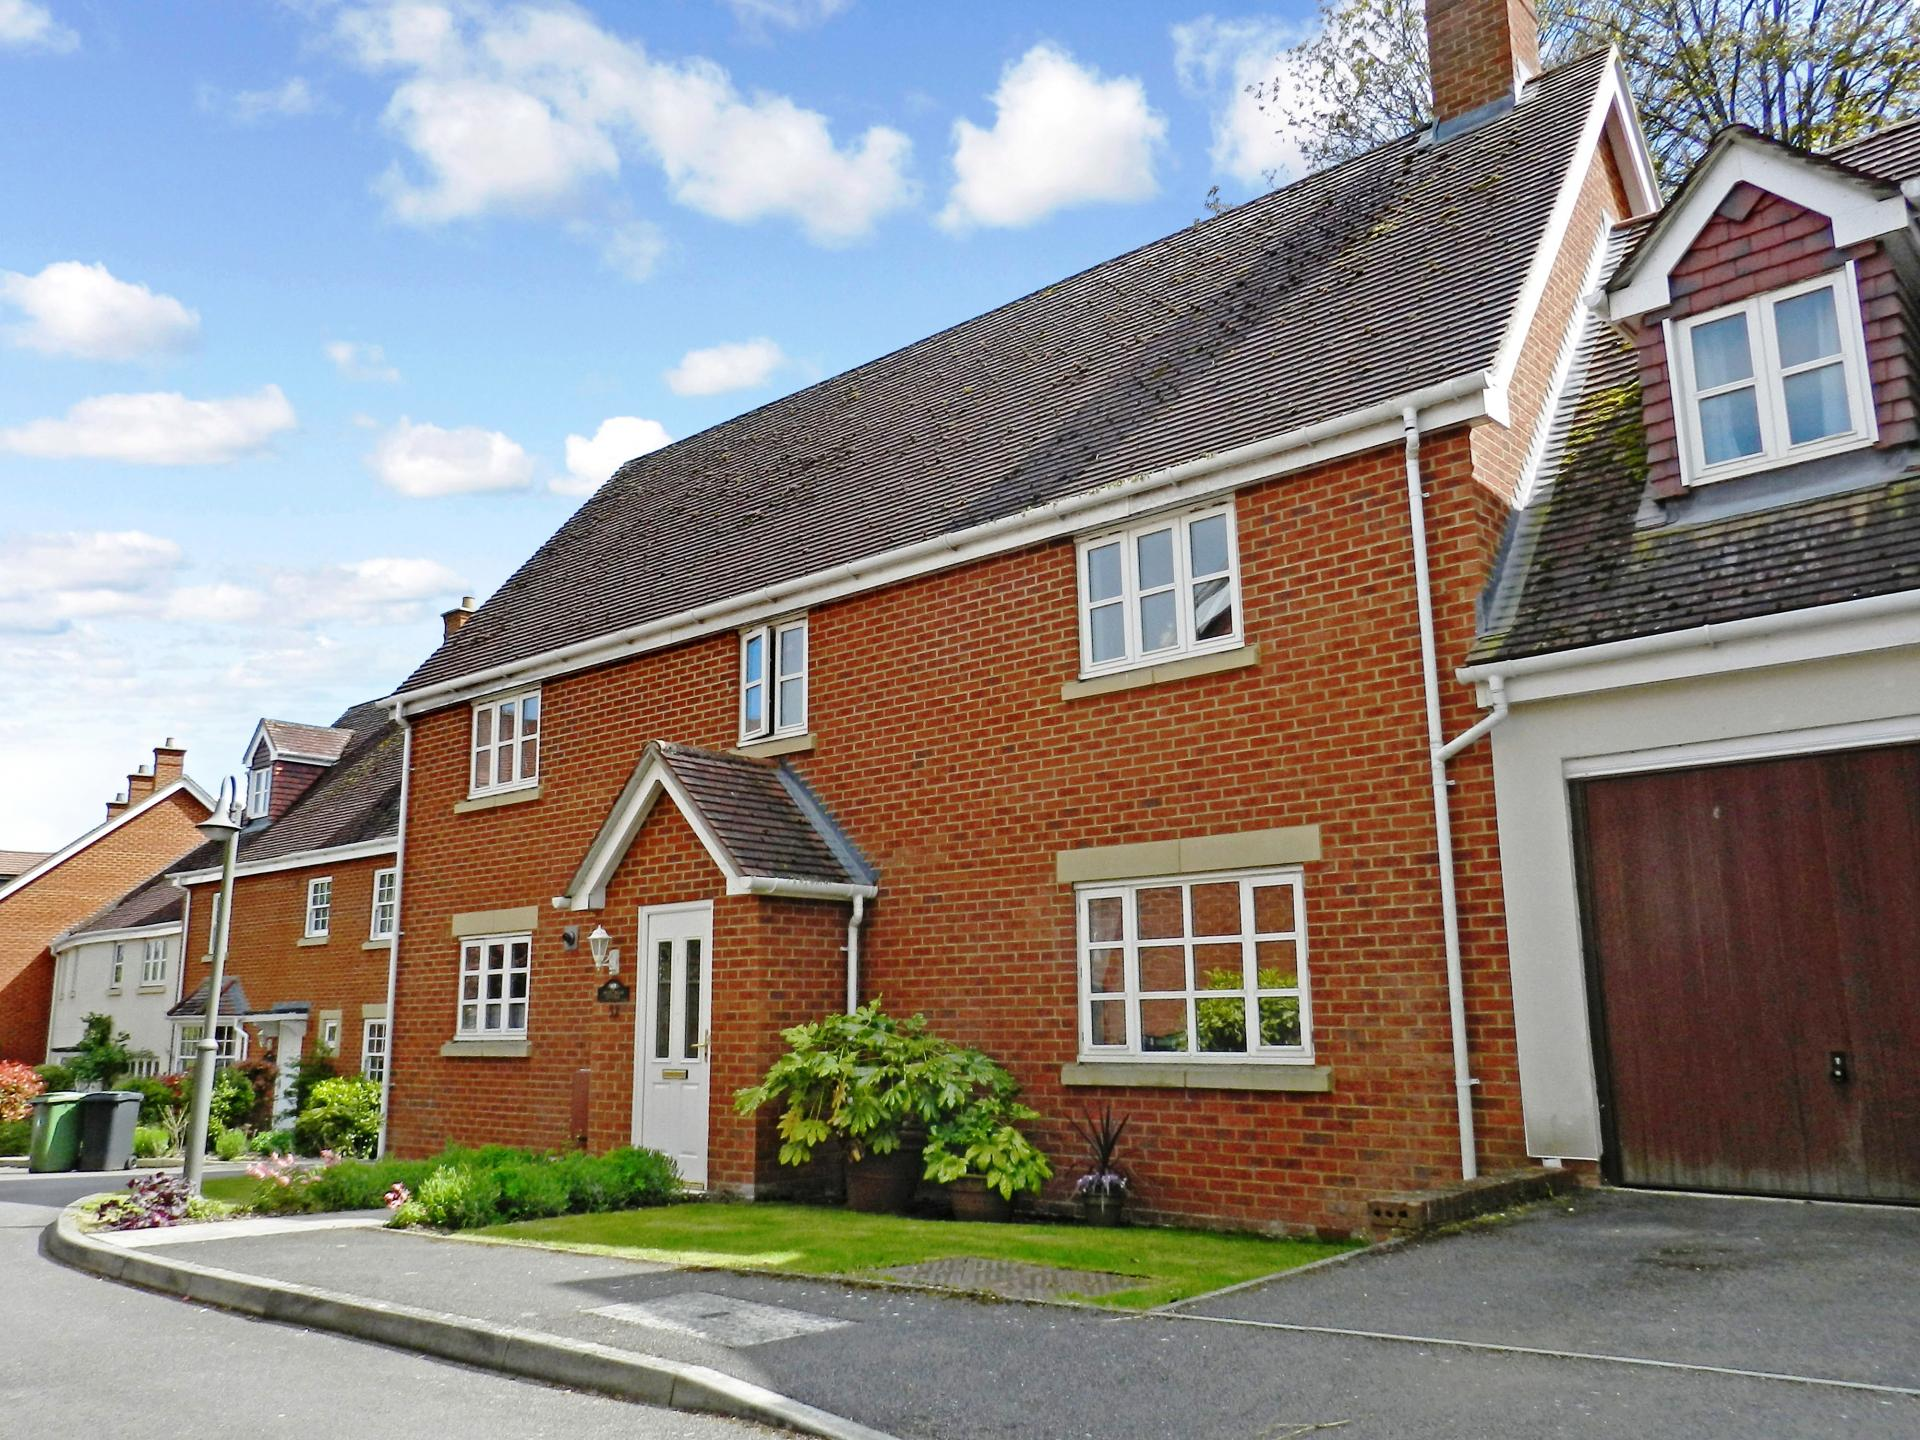 4 Bedrooms Detached House for sale in Sutton Scotney, Winchester